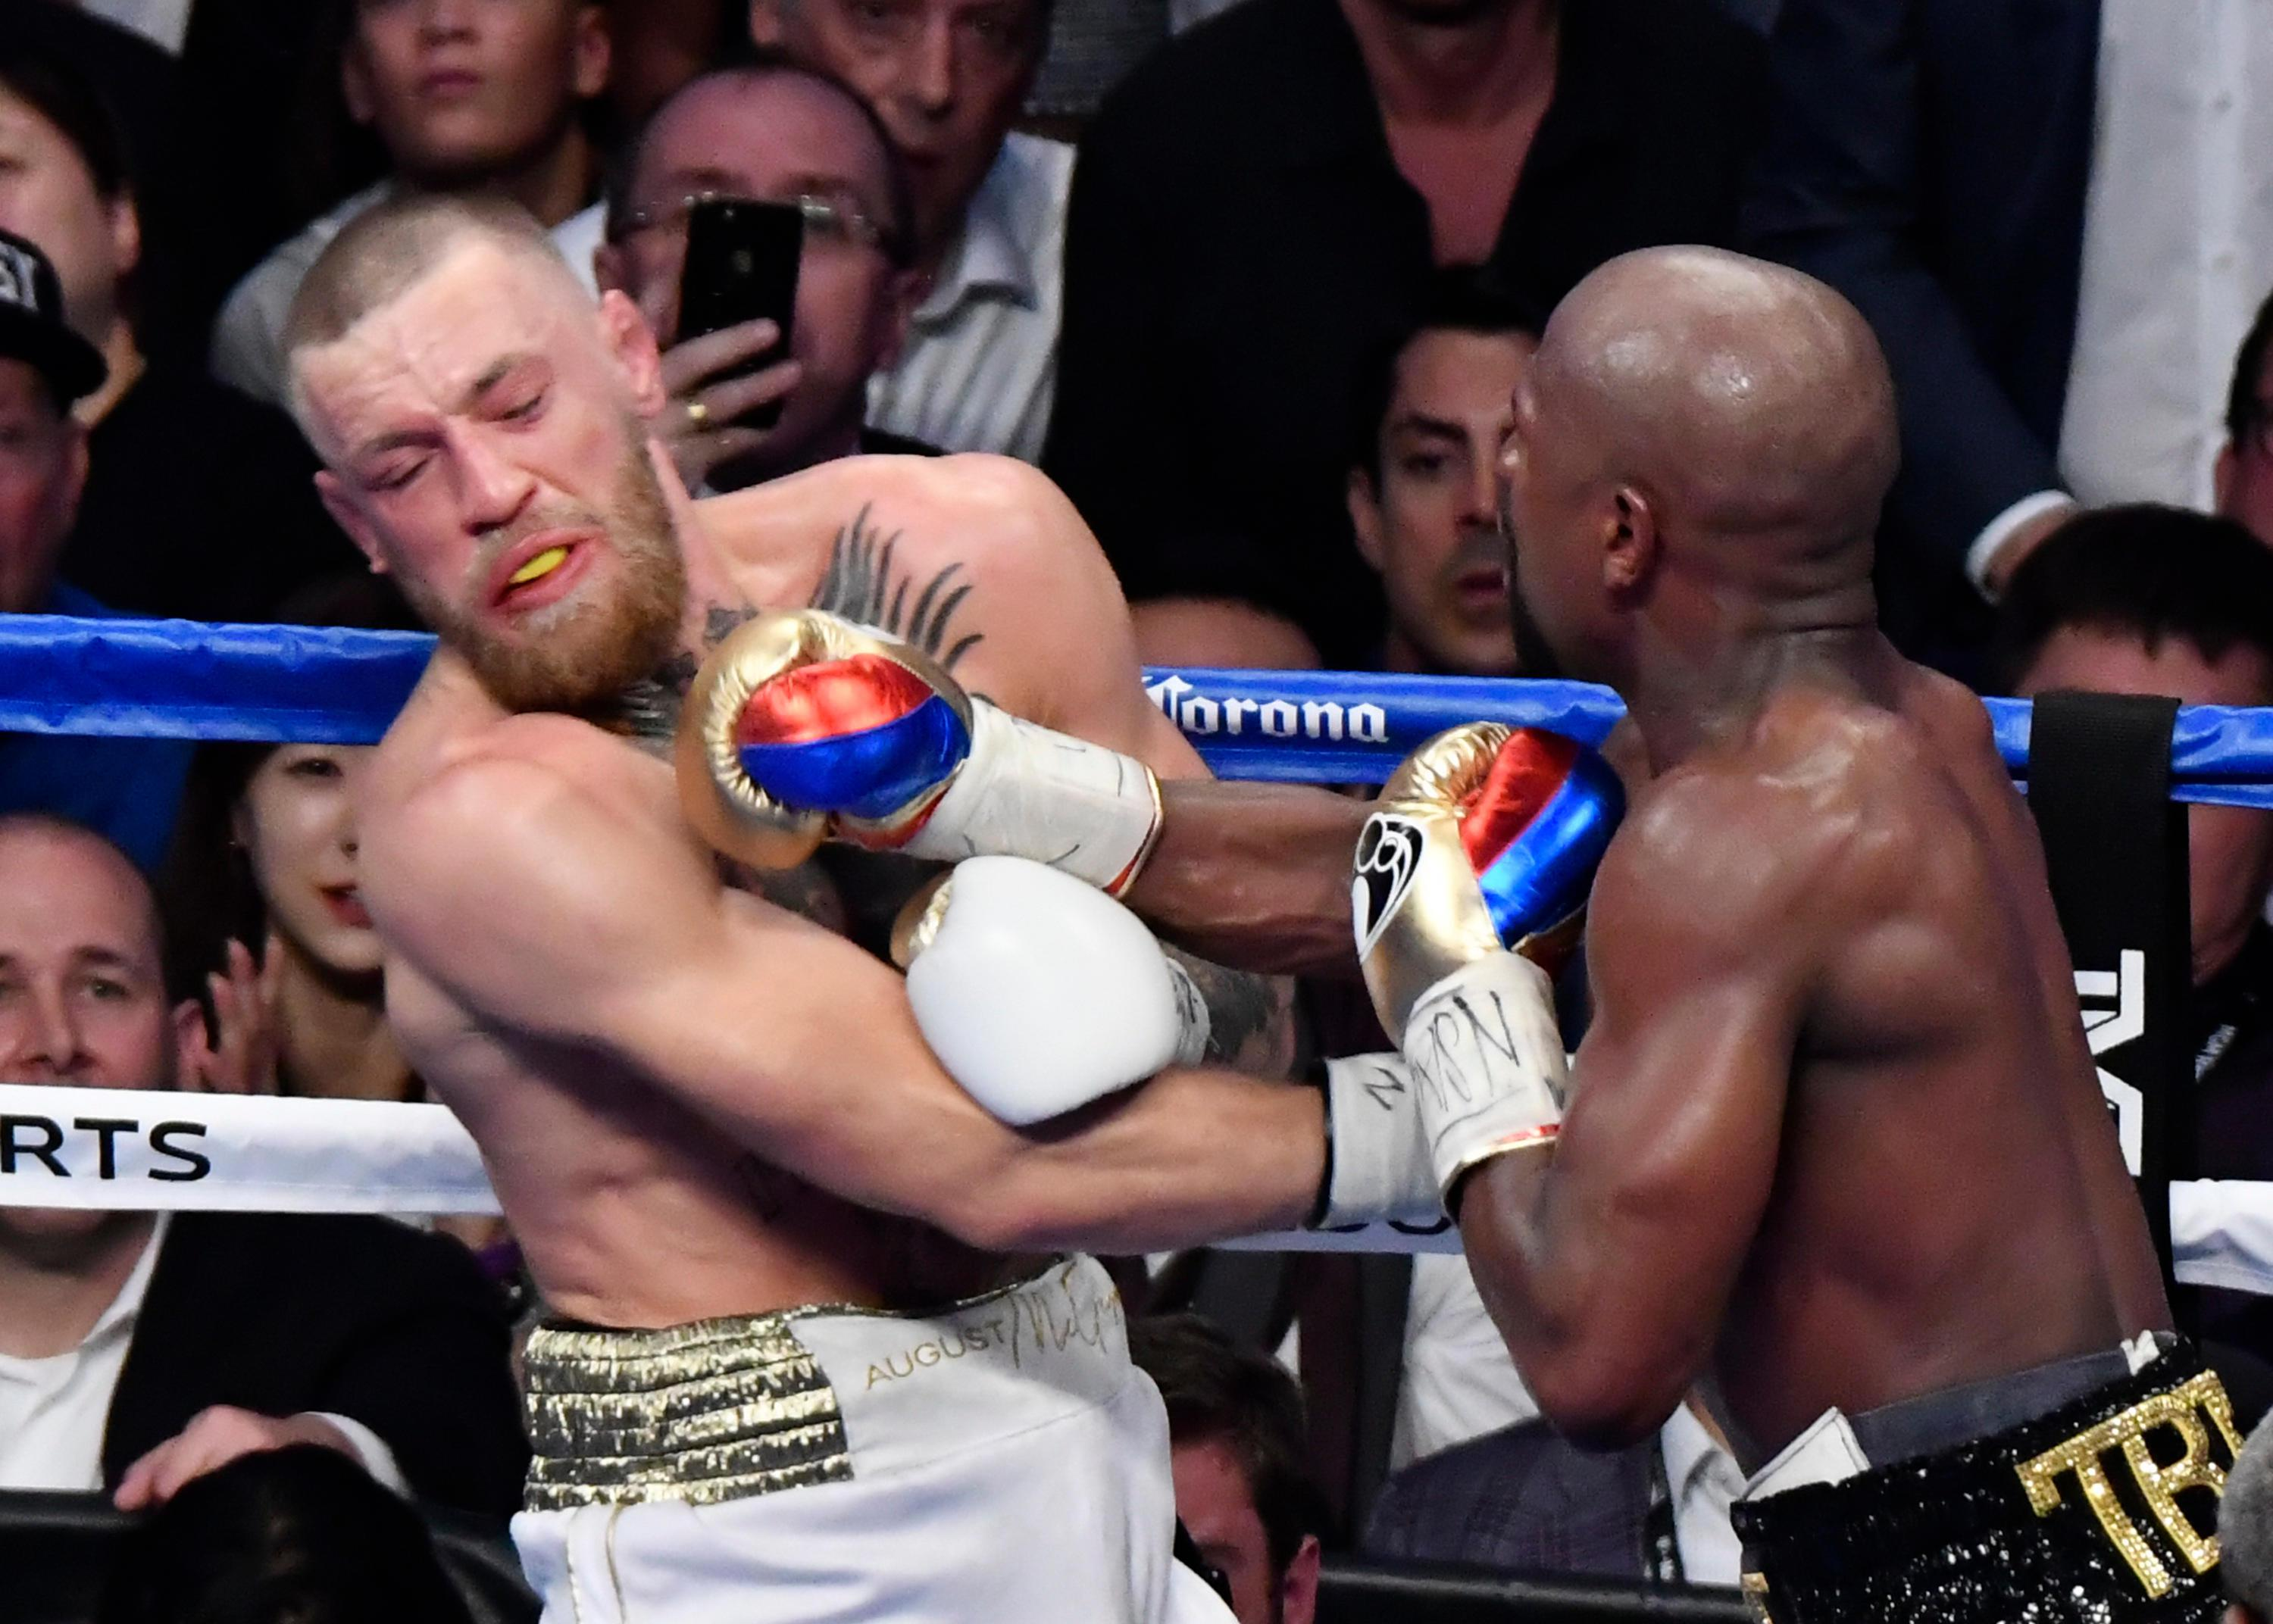 Conor McGregor was stopped in the tenth round by Floyd Mayweather